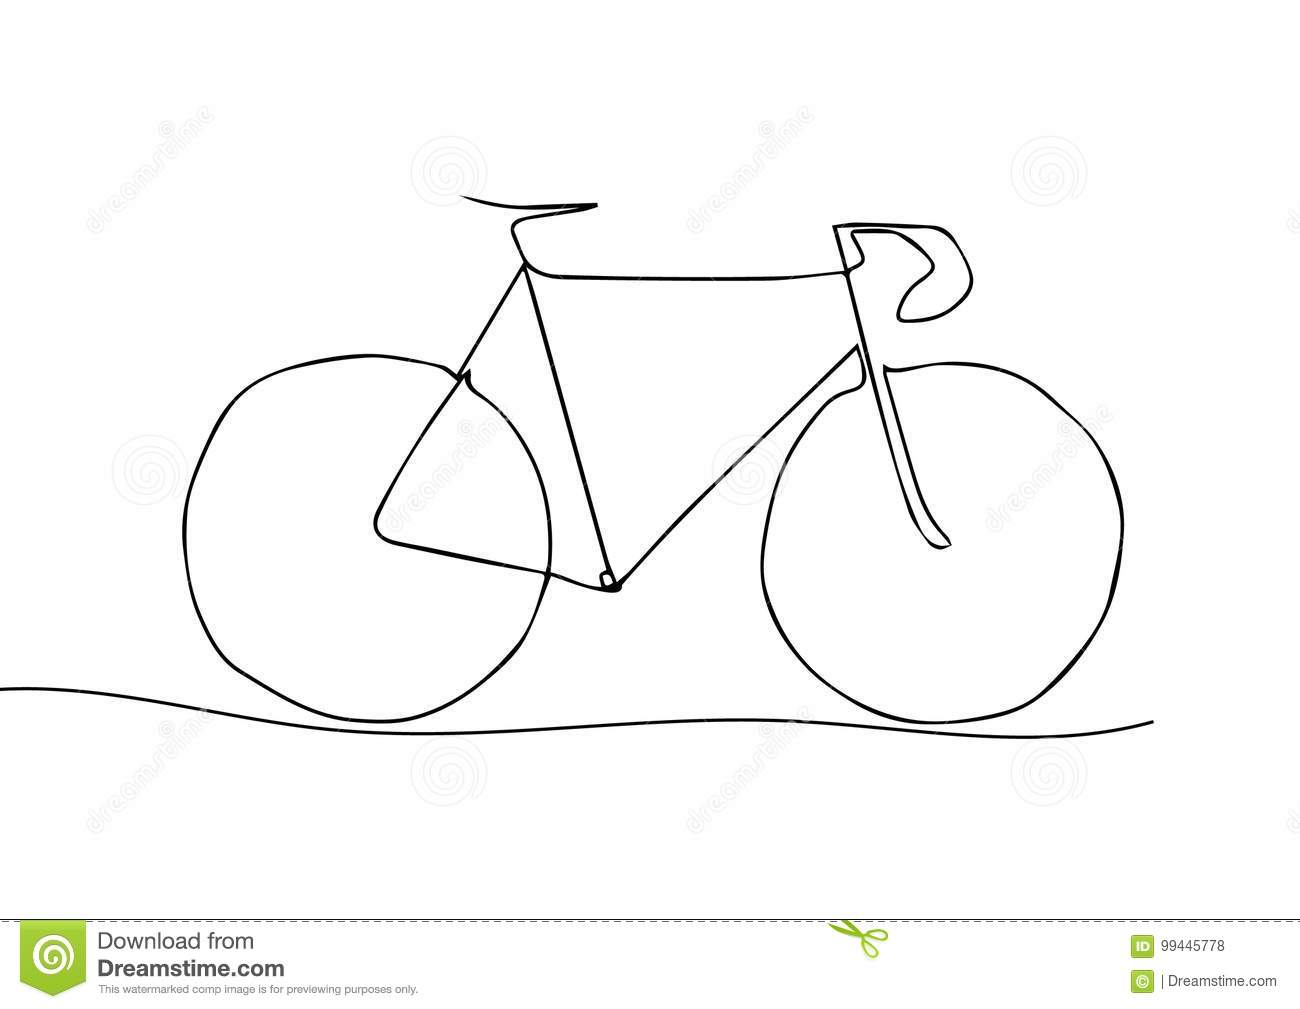 One Line Art Facepalm : One line drawing or continuous art of a bicycle